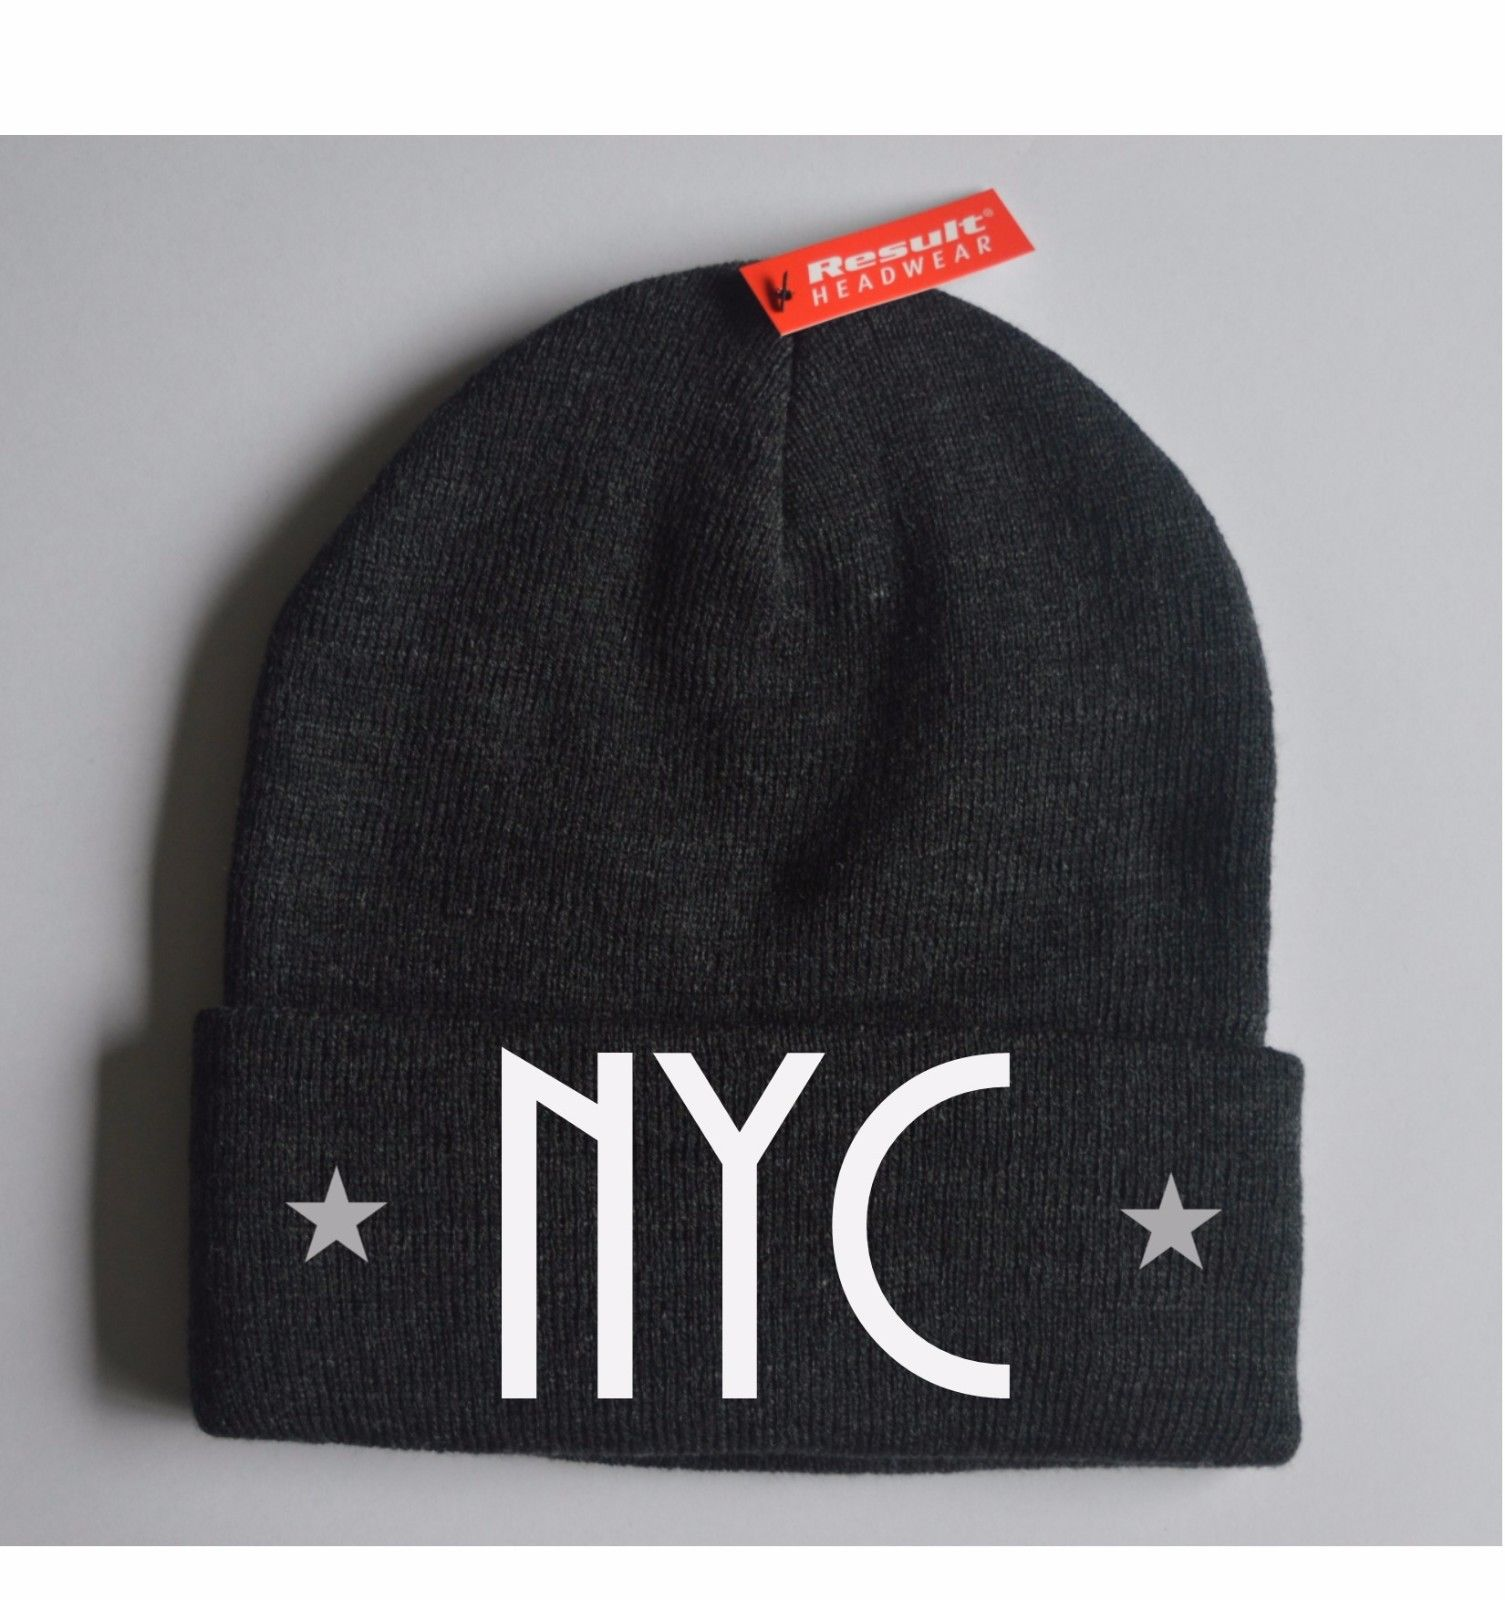 Printed Beanie NYC America USA States Hat Cap Knit Caps New Gift Mens Womens ba8bdef0d7